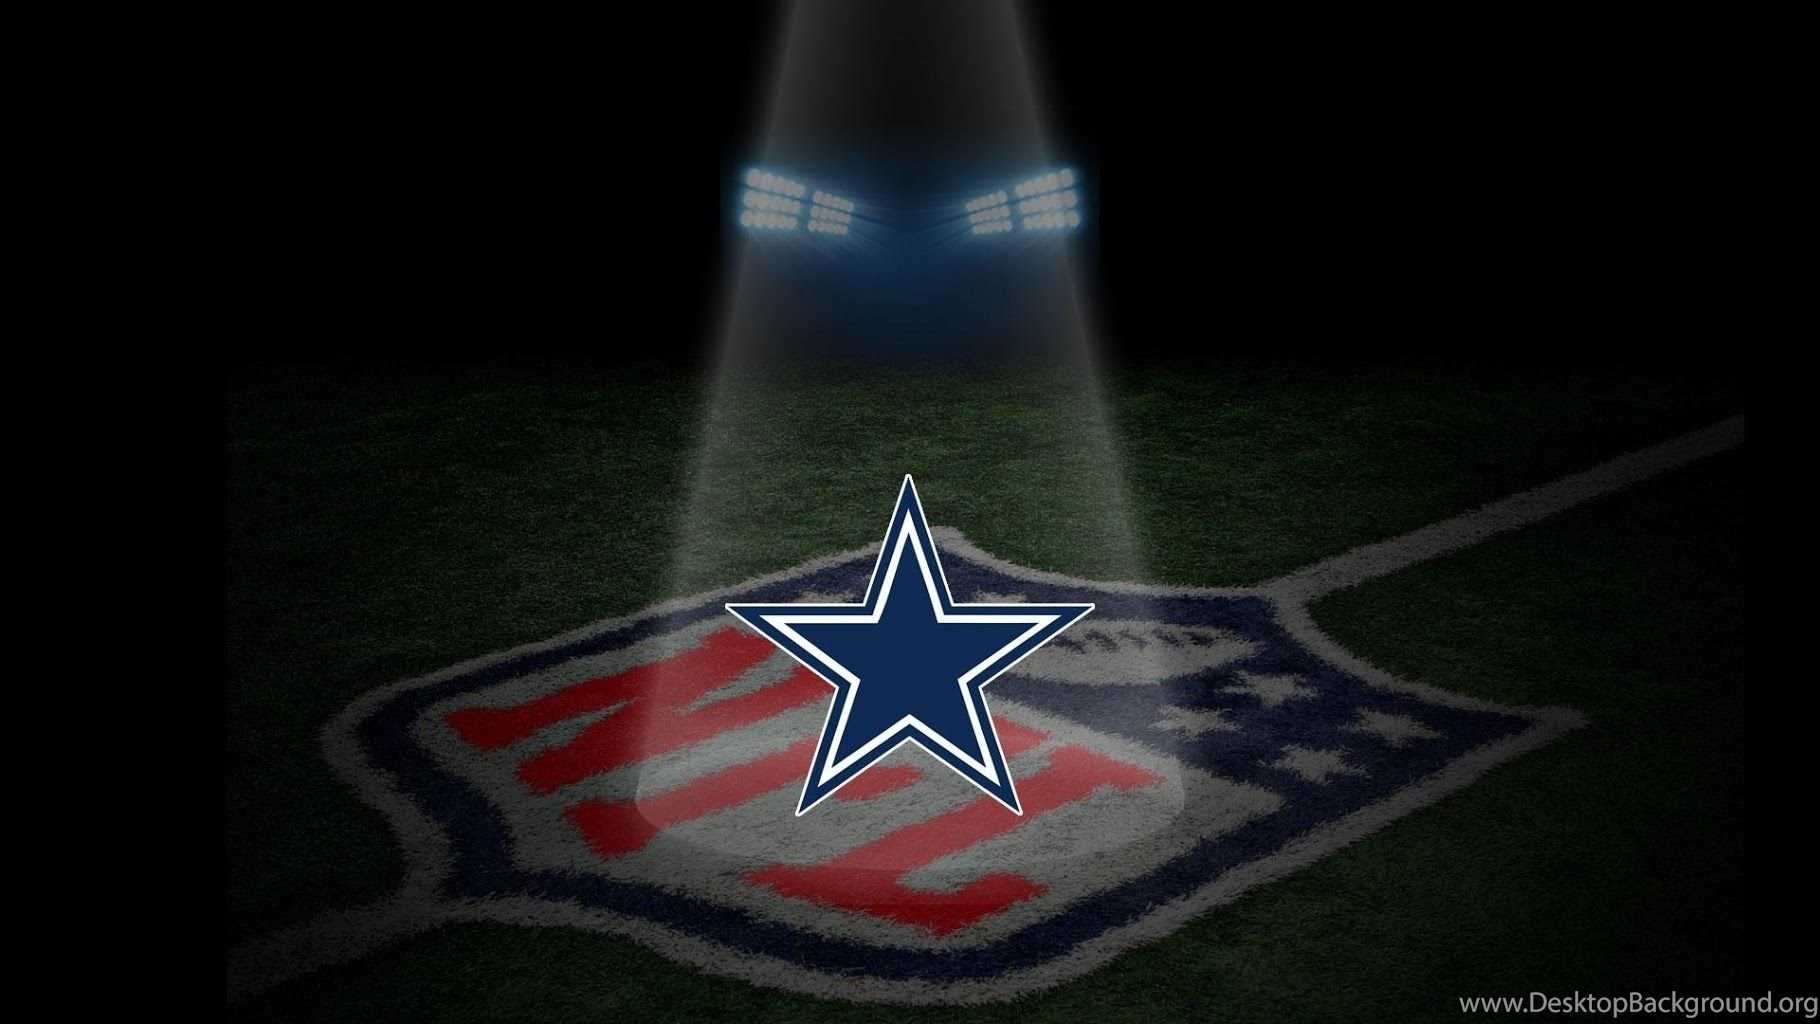 Dallas Cowboys Wallpapers For Android D9w Mywallpaperworld Com